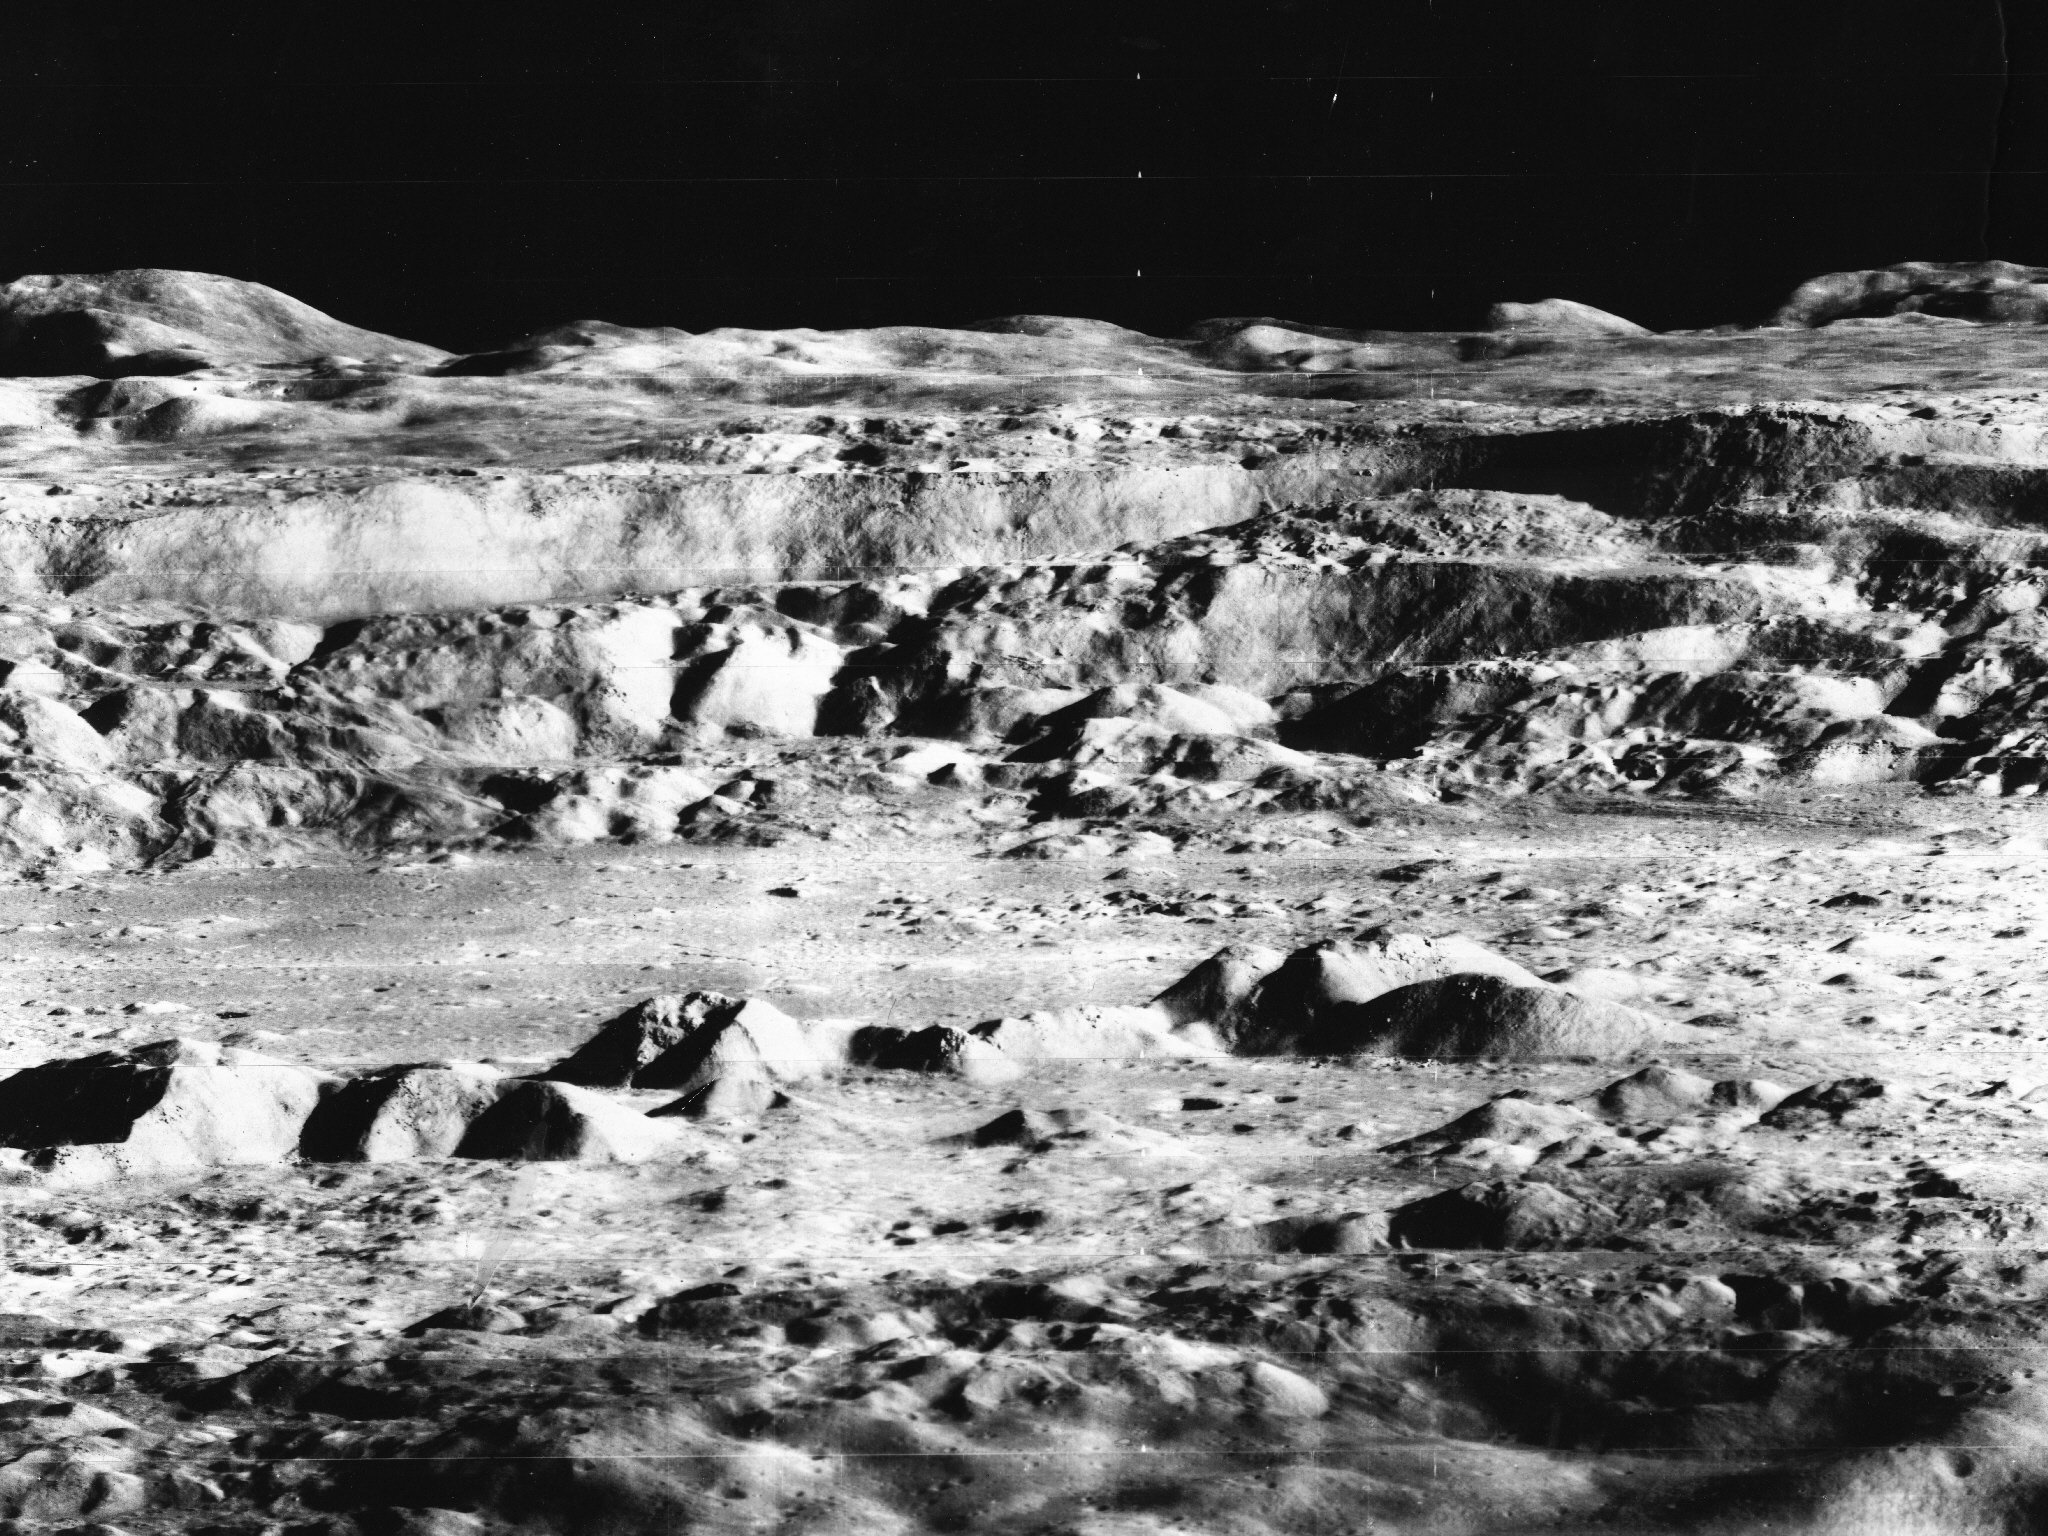 Alien Bases And Craft On The Moon